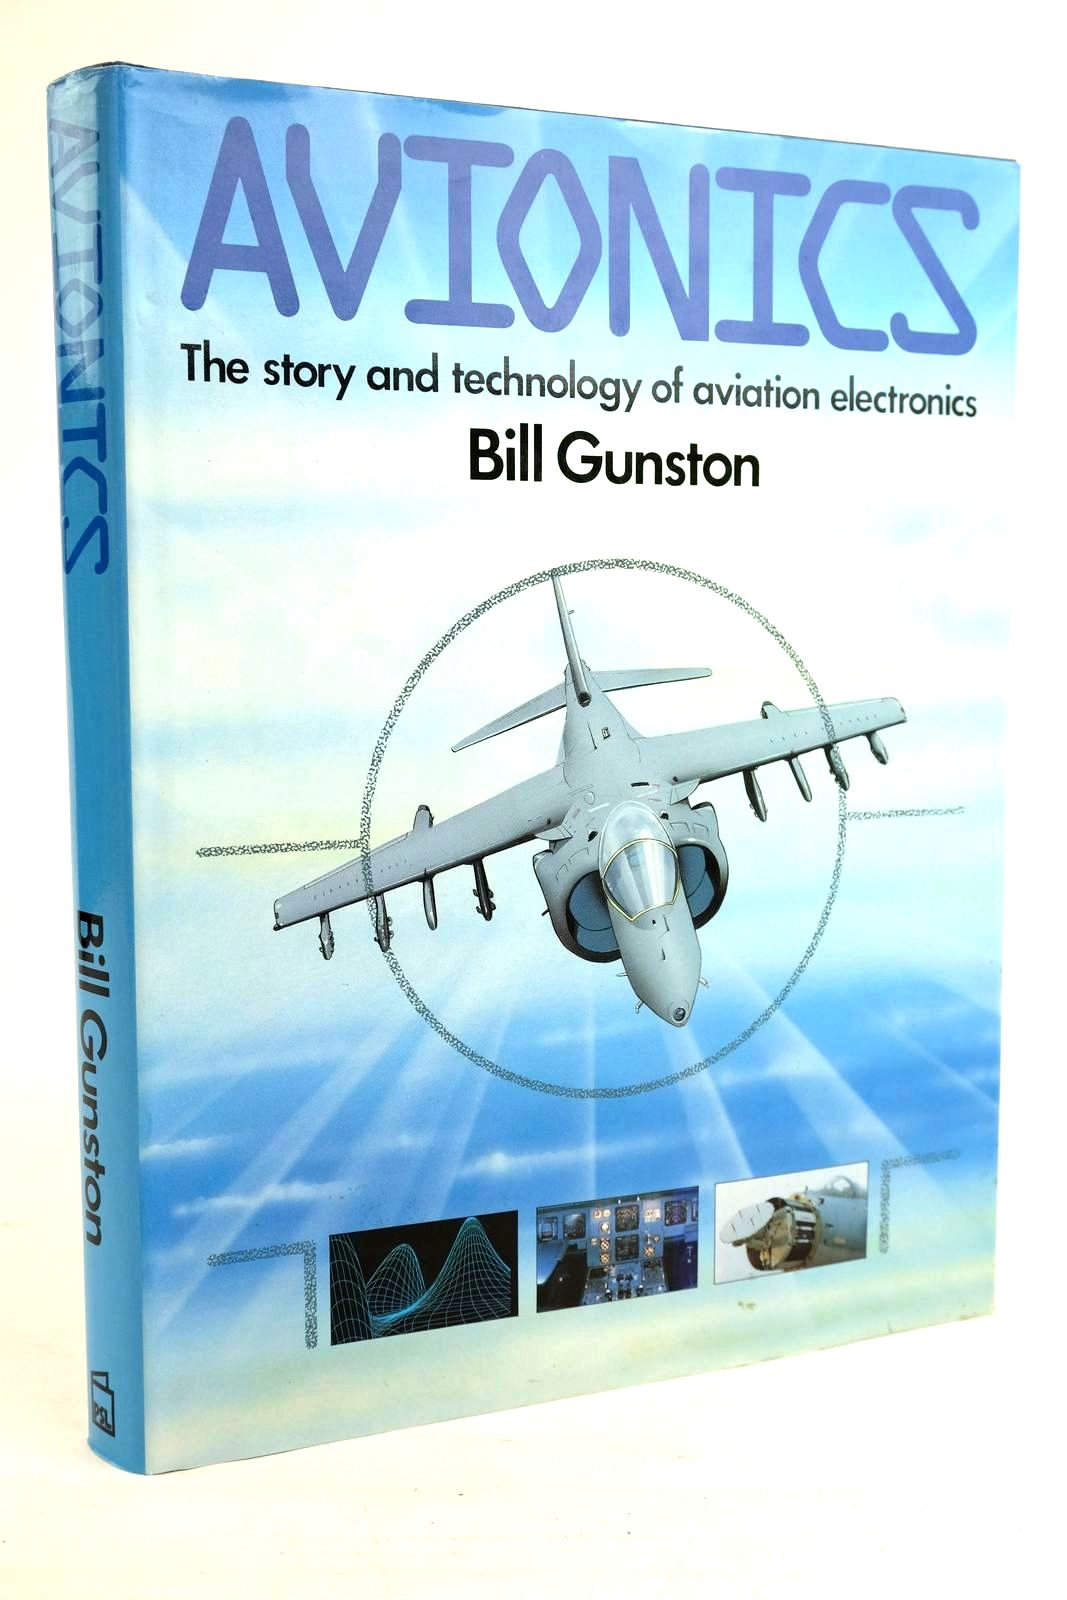 Photo of AVIONICS THE STORY AND TECHNOLOGY OF AVIATION ELECTRONICS written by Gunston, Bill published by Patrick Stephens Limited (STOCK CODE: 1320218)  for sale by Stella & Rose's Books